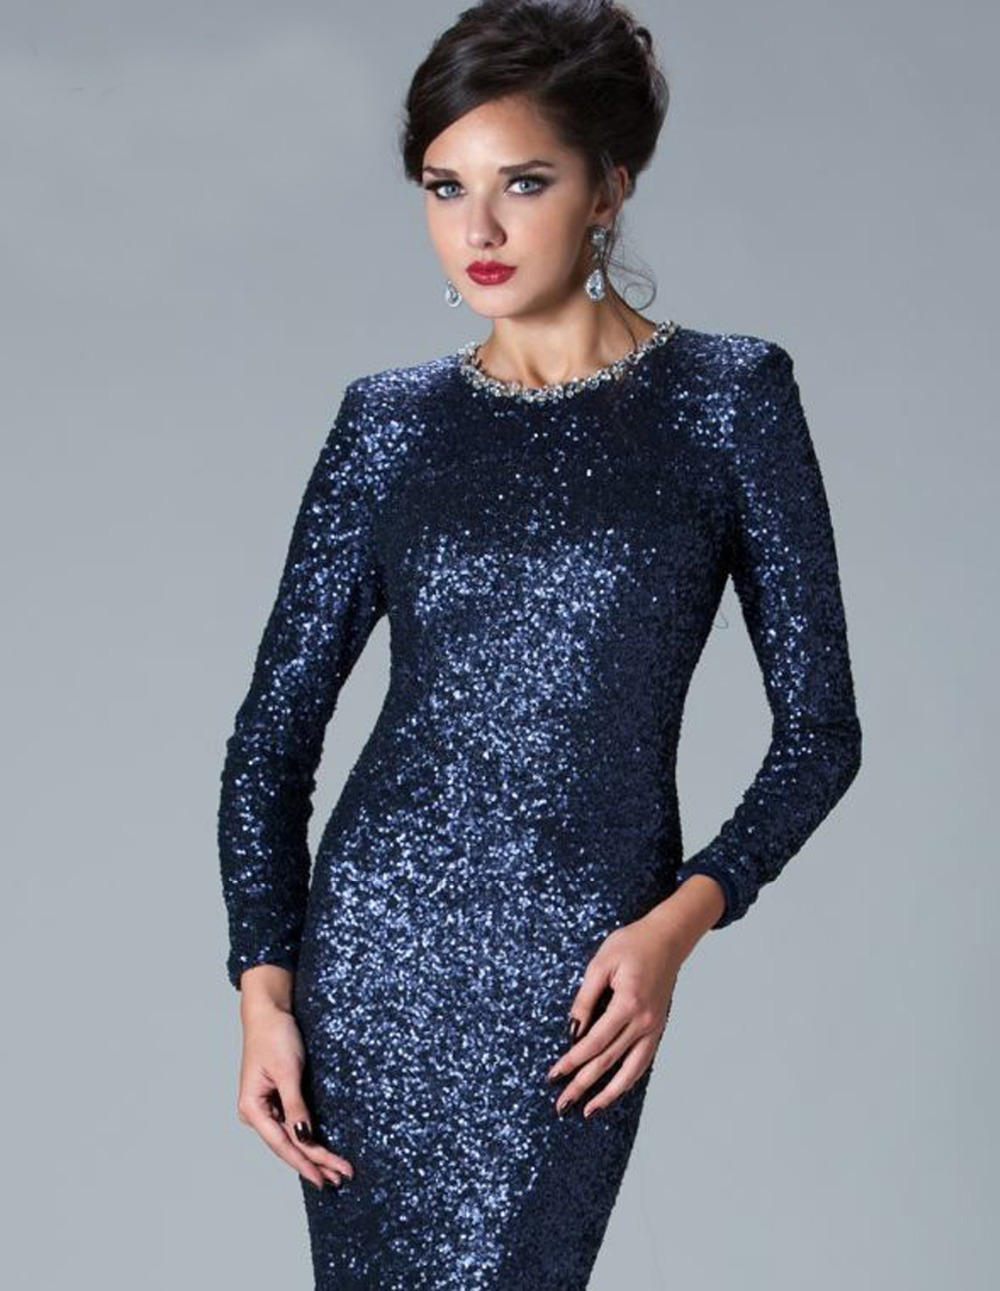 Old Fashioned Sequence Party Dresses Crest - All Wedding Dresses ...